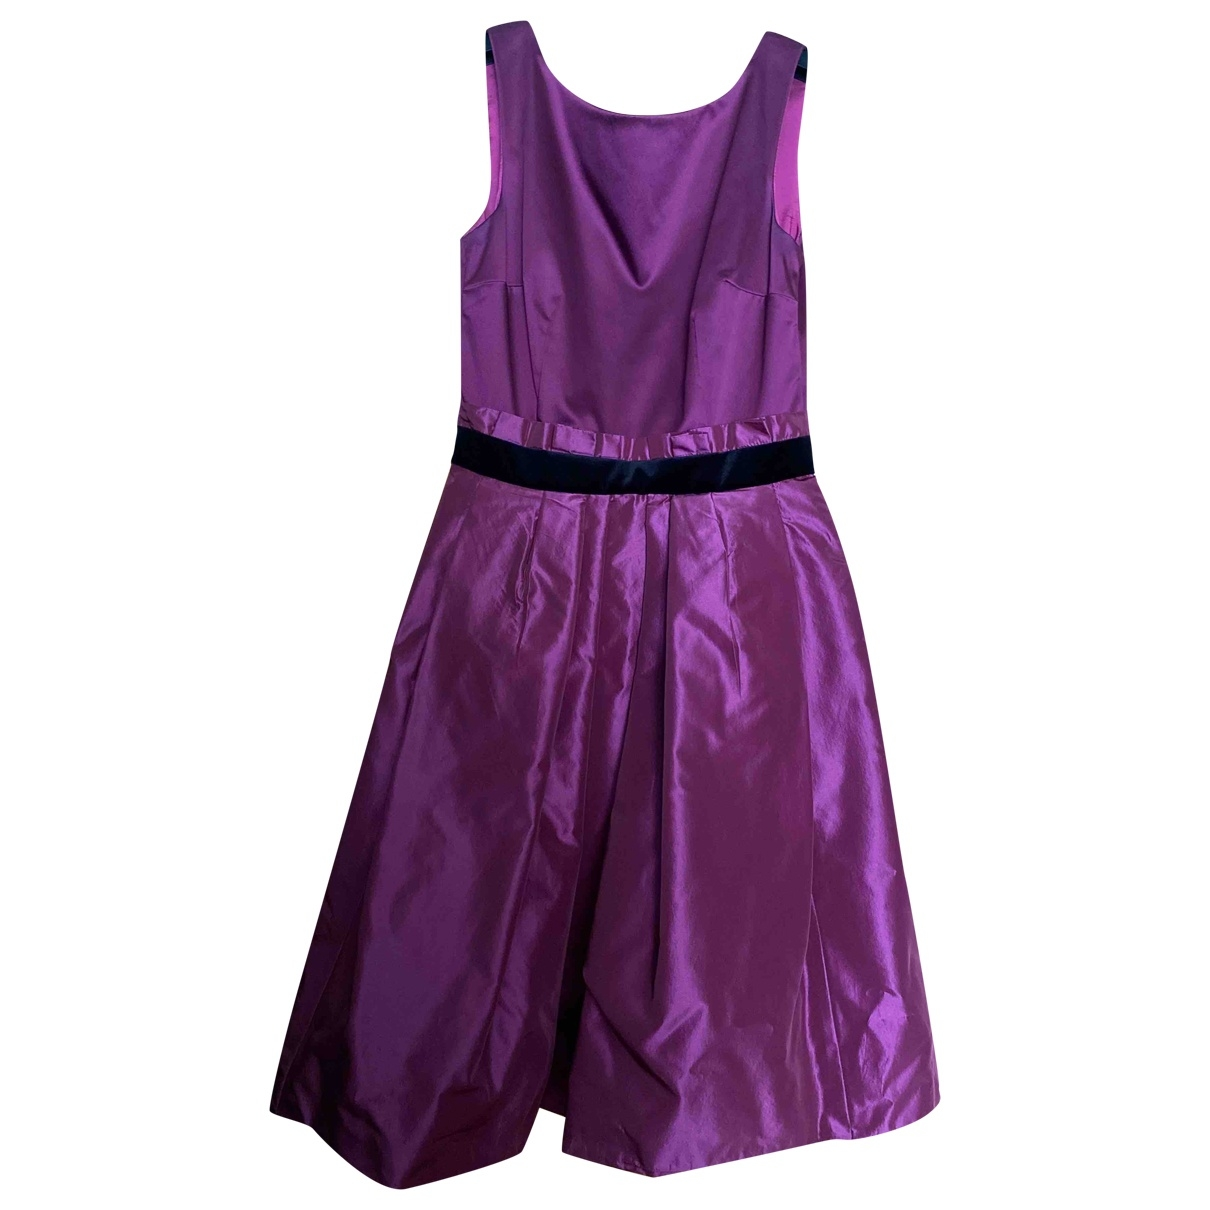 D&g \N Kleid in  Lila Polyester